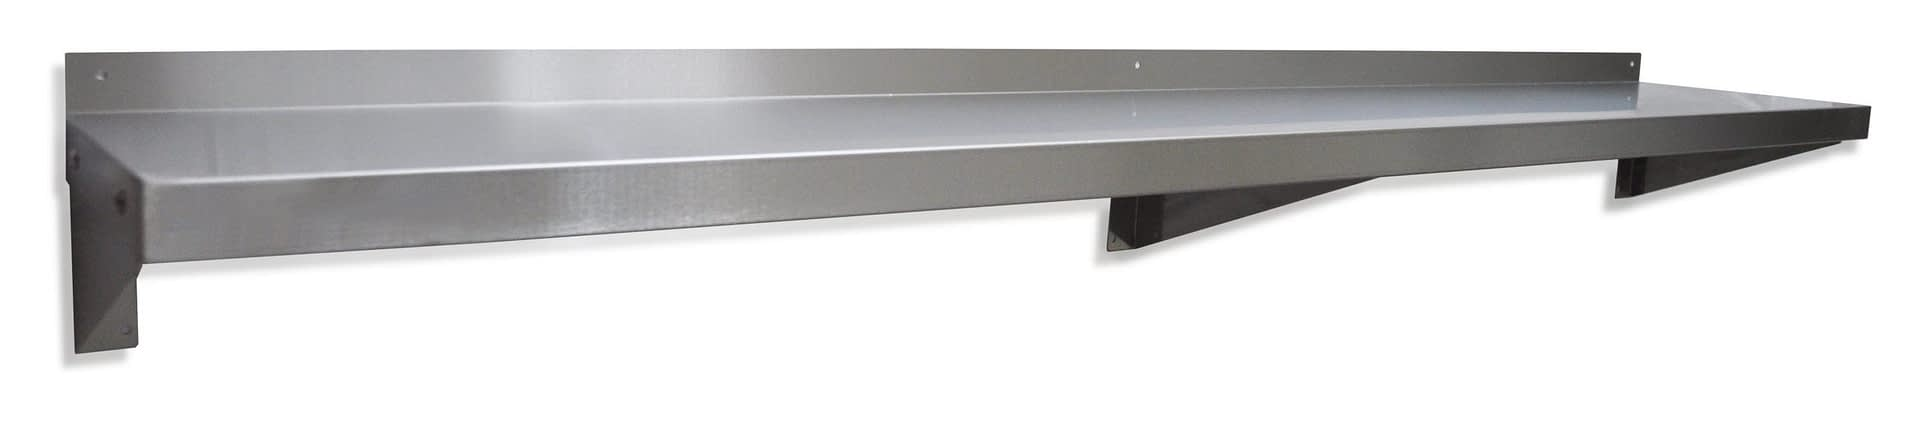 Stainless Steel Solid Wall Shelf, 1800 X 300mm deep